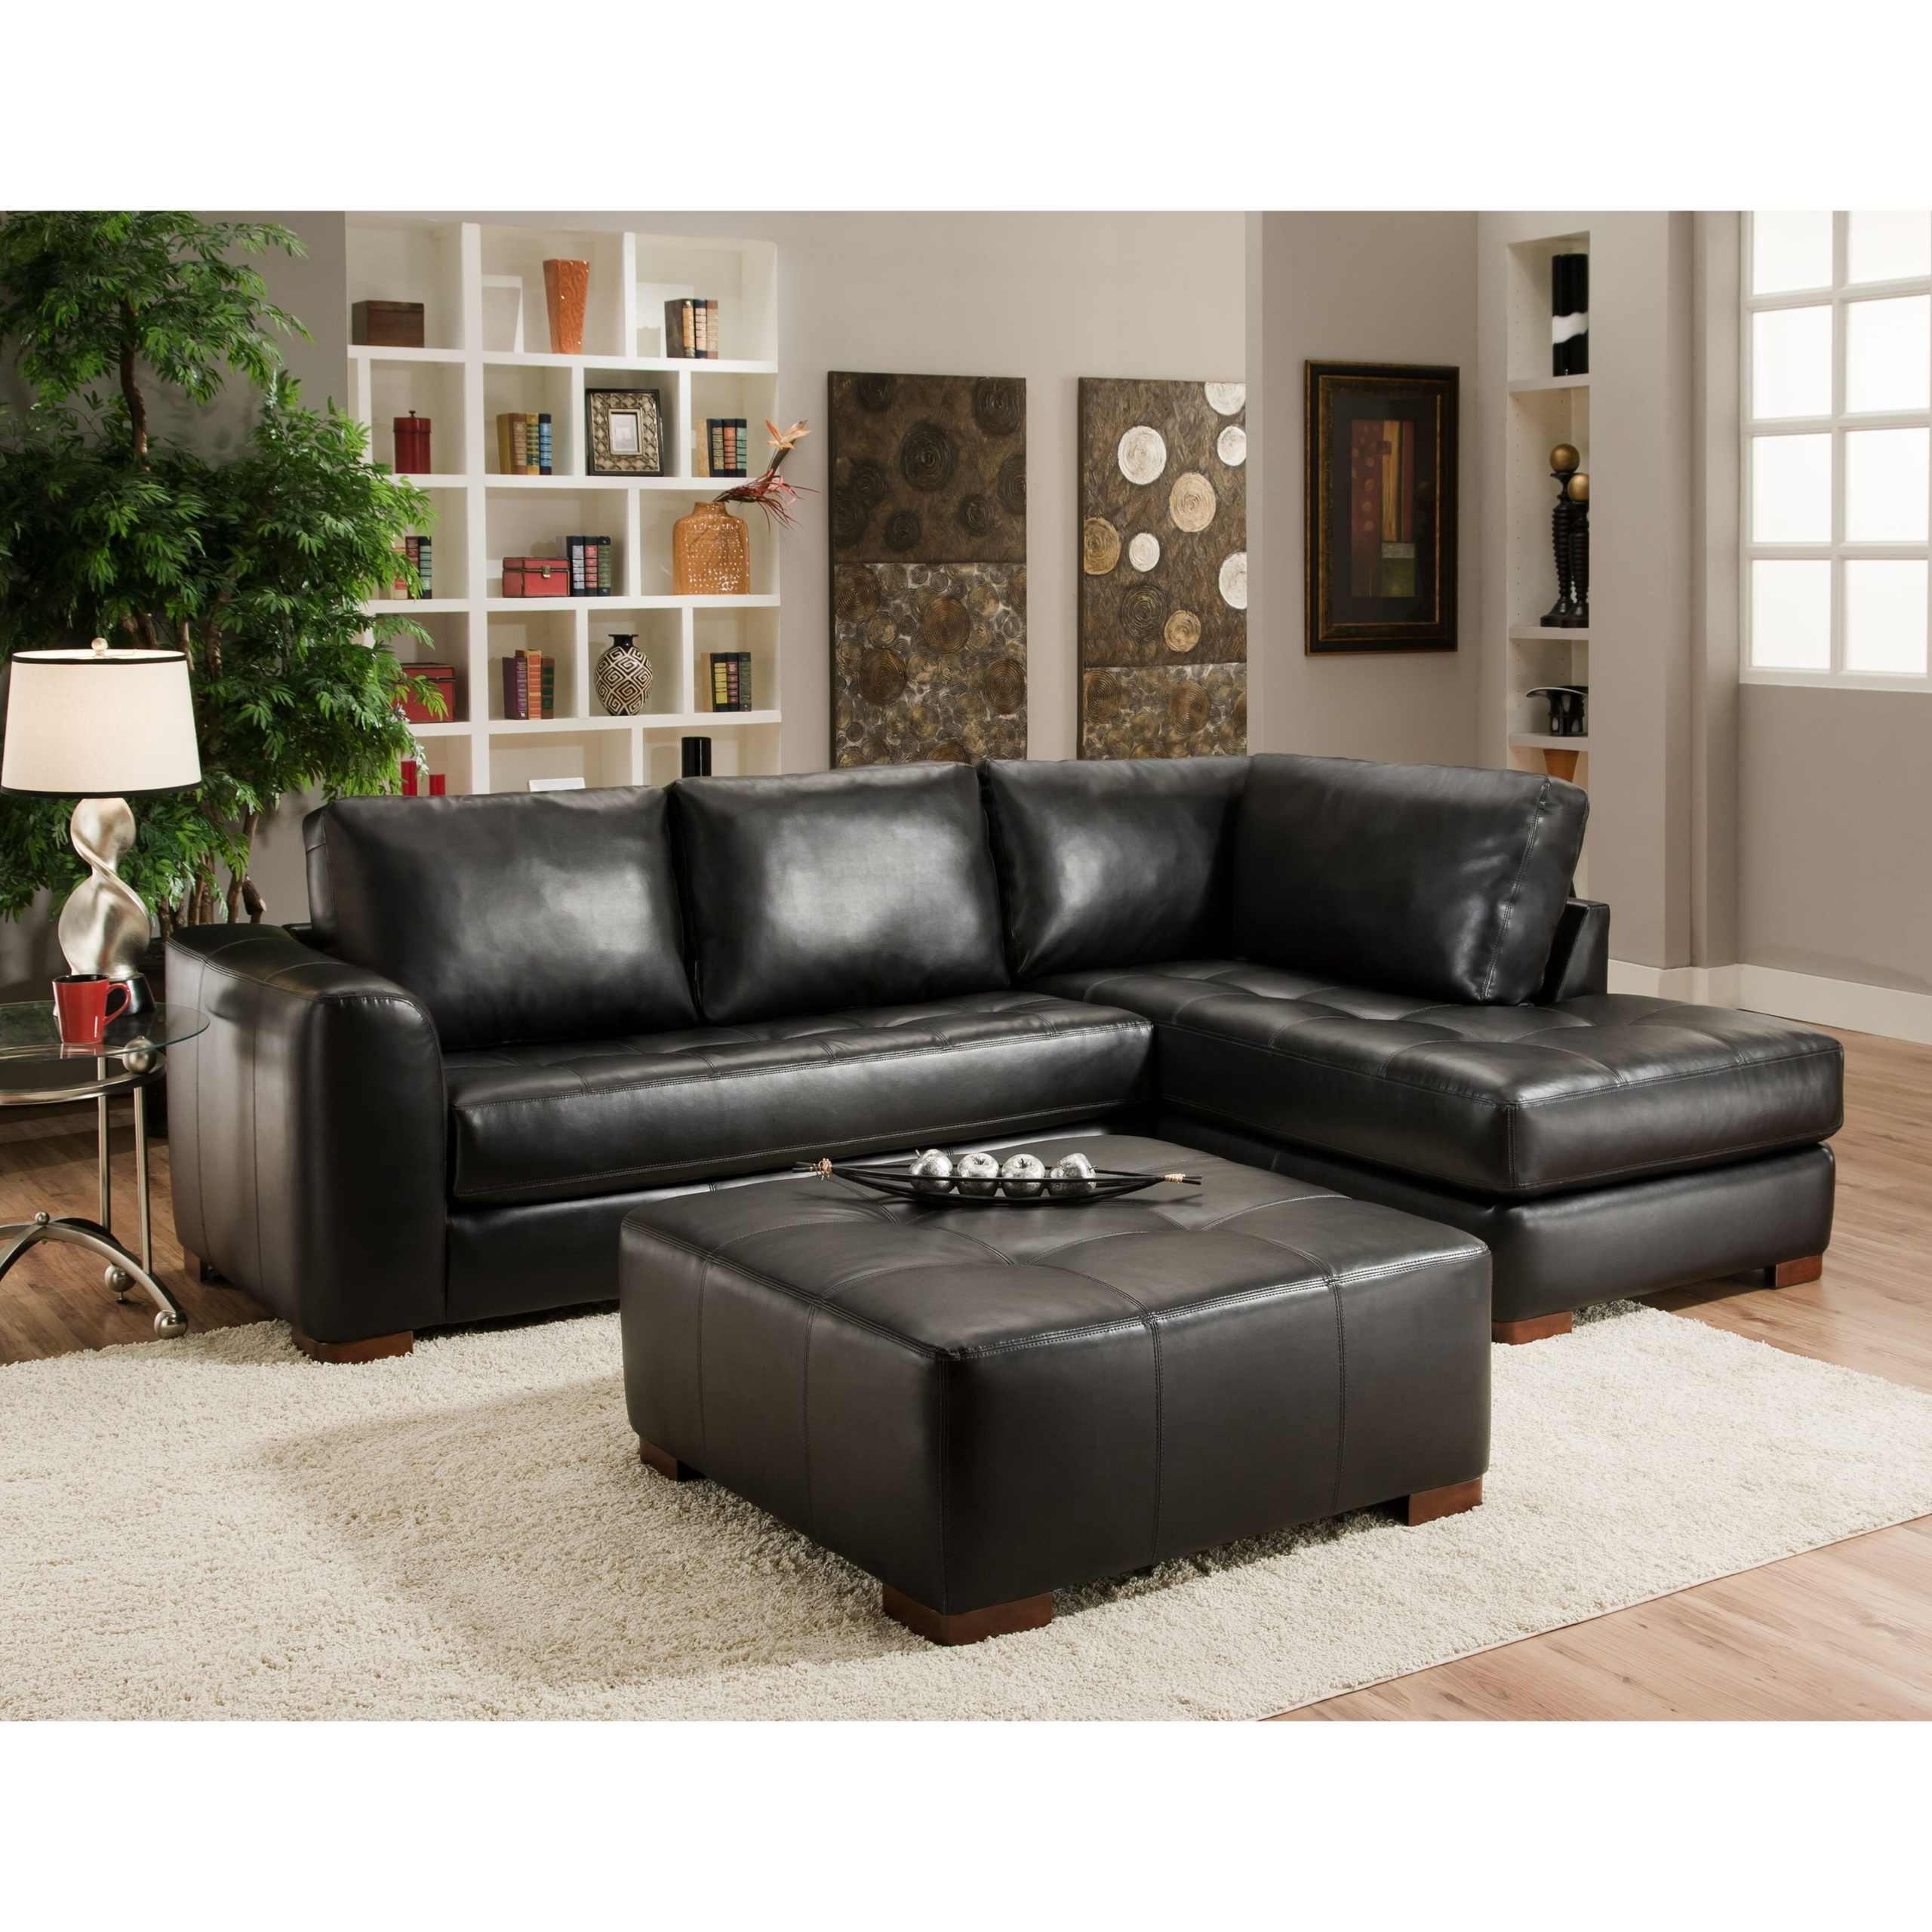 small leather sofa with chaise foter rh foter com compact leather sofas for small rooms small leather sectional sofas for small spaces